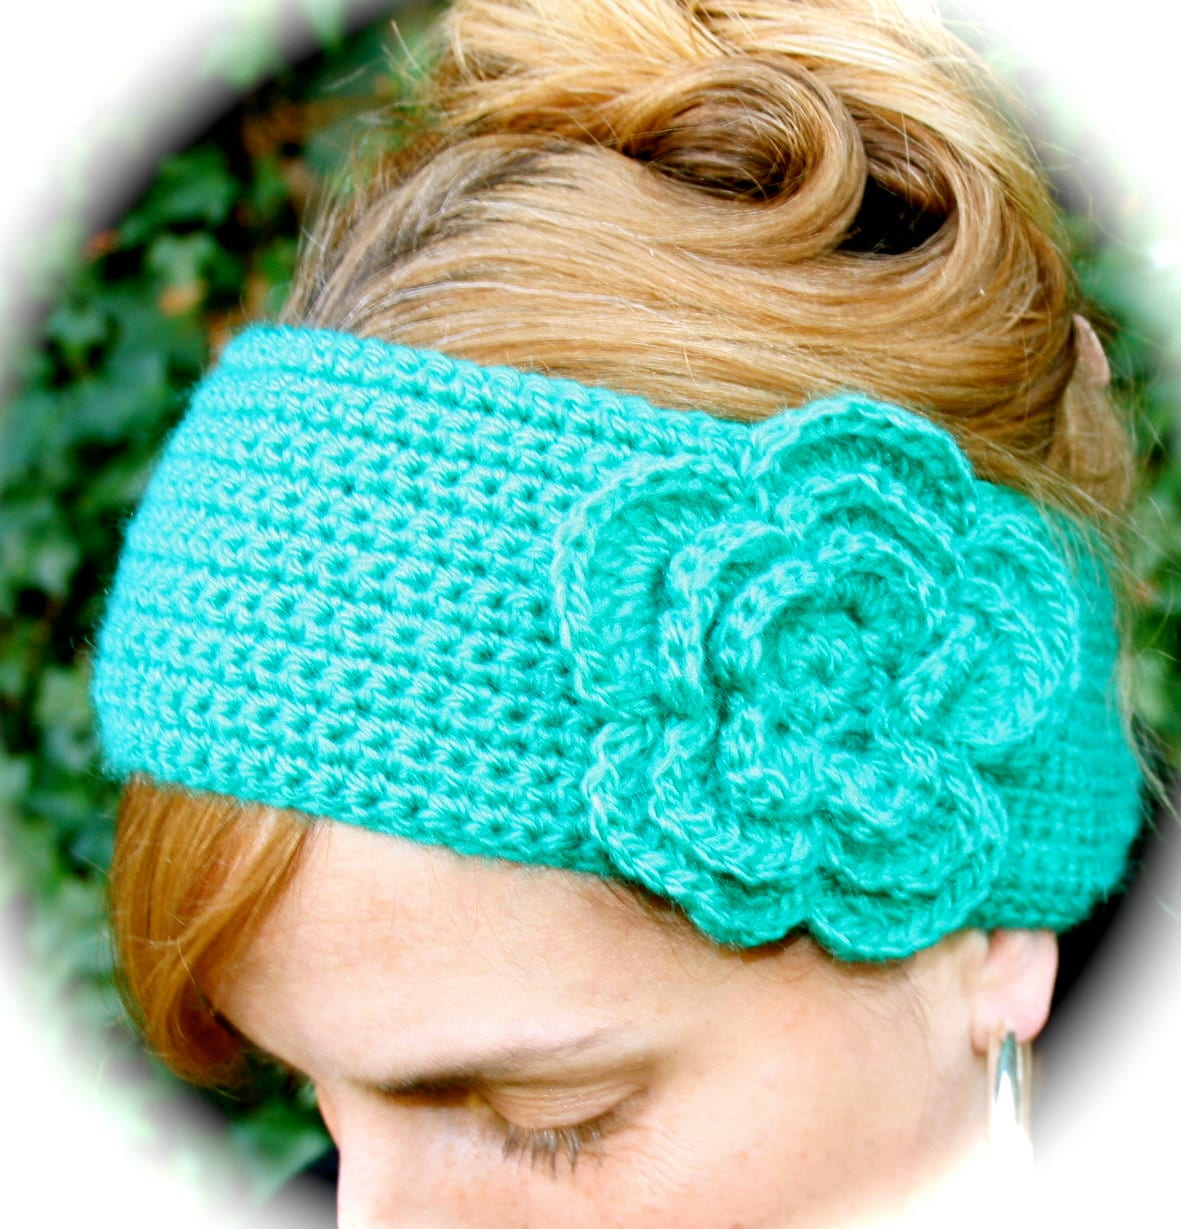 Crochet Pattern For Headband With Flower : FLOWER HEADBANDCrochet Pattern Headband with Big Layered